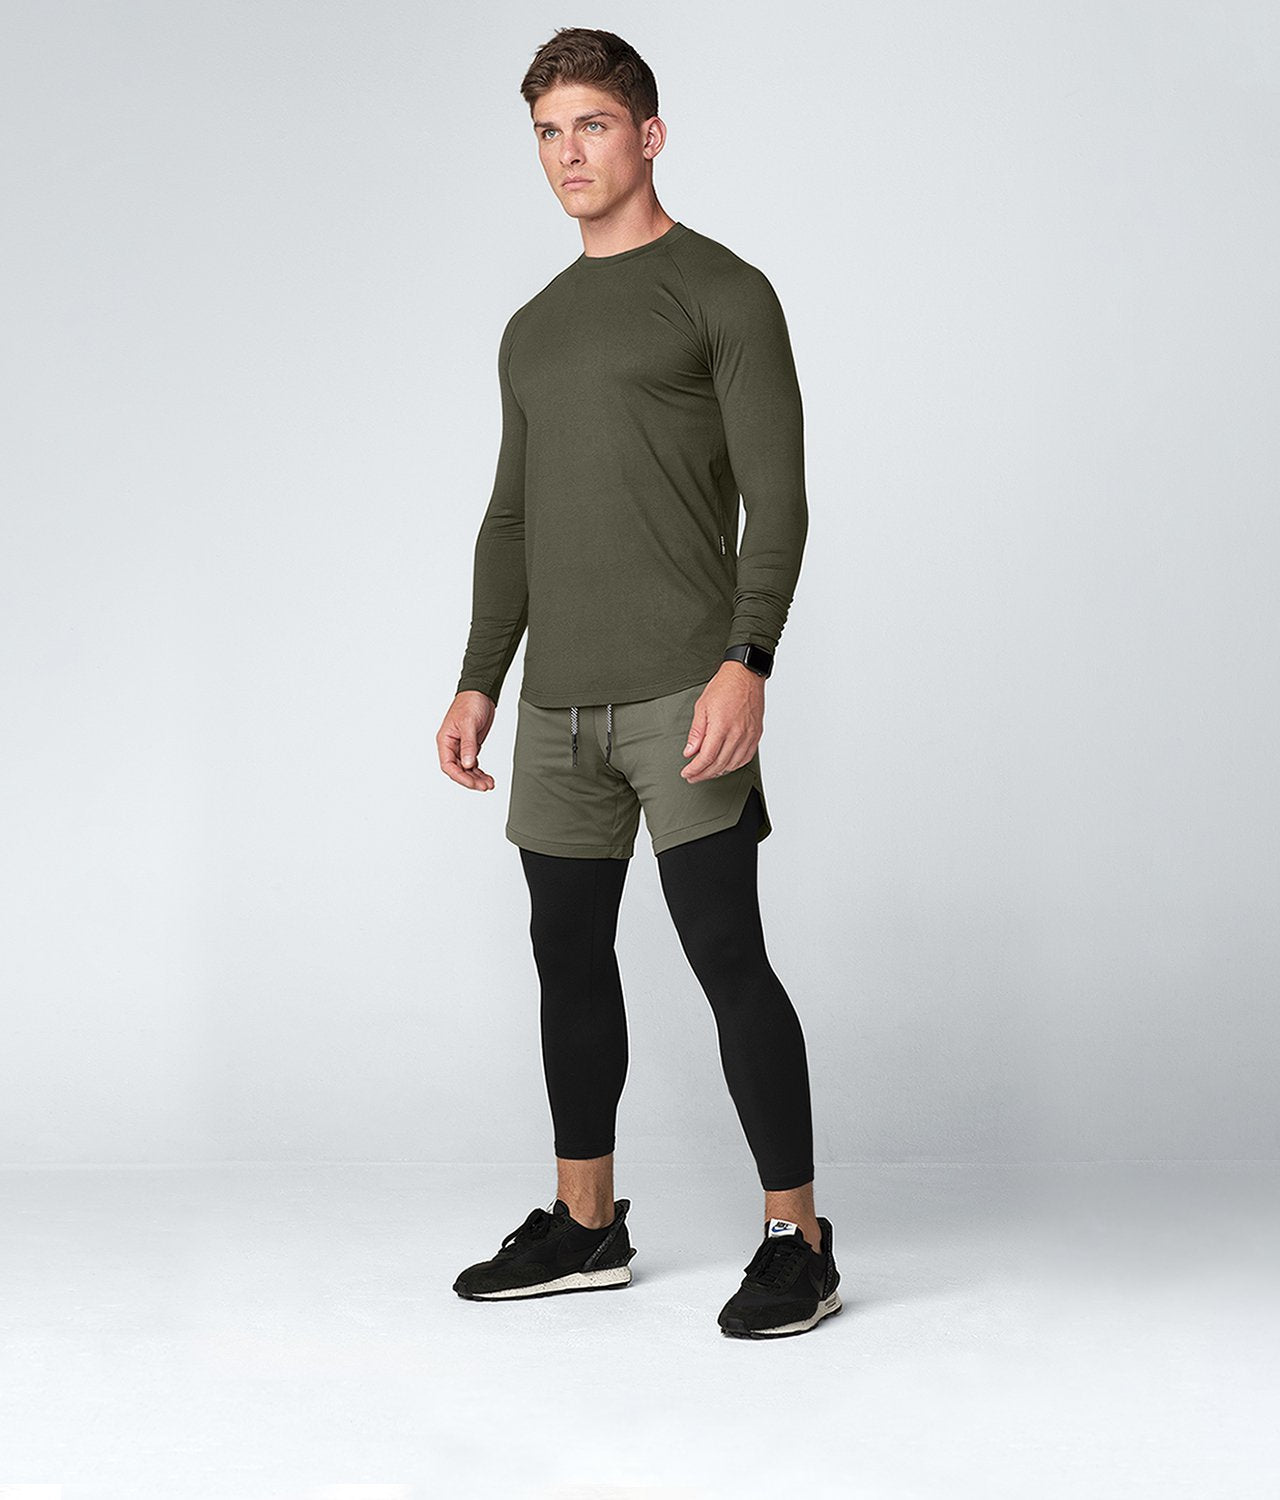 Born Tough United Kingdom Core Fit Stretchable Army Green Long Sleeve Gym Workout Shirt For Men